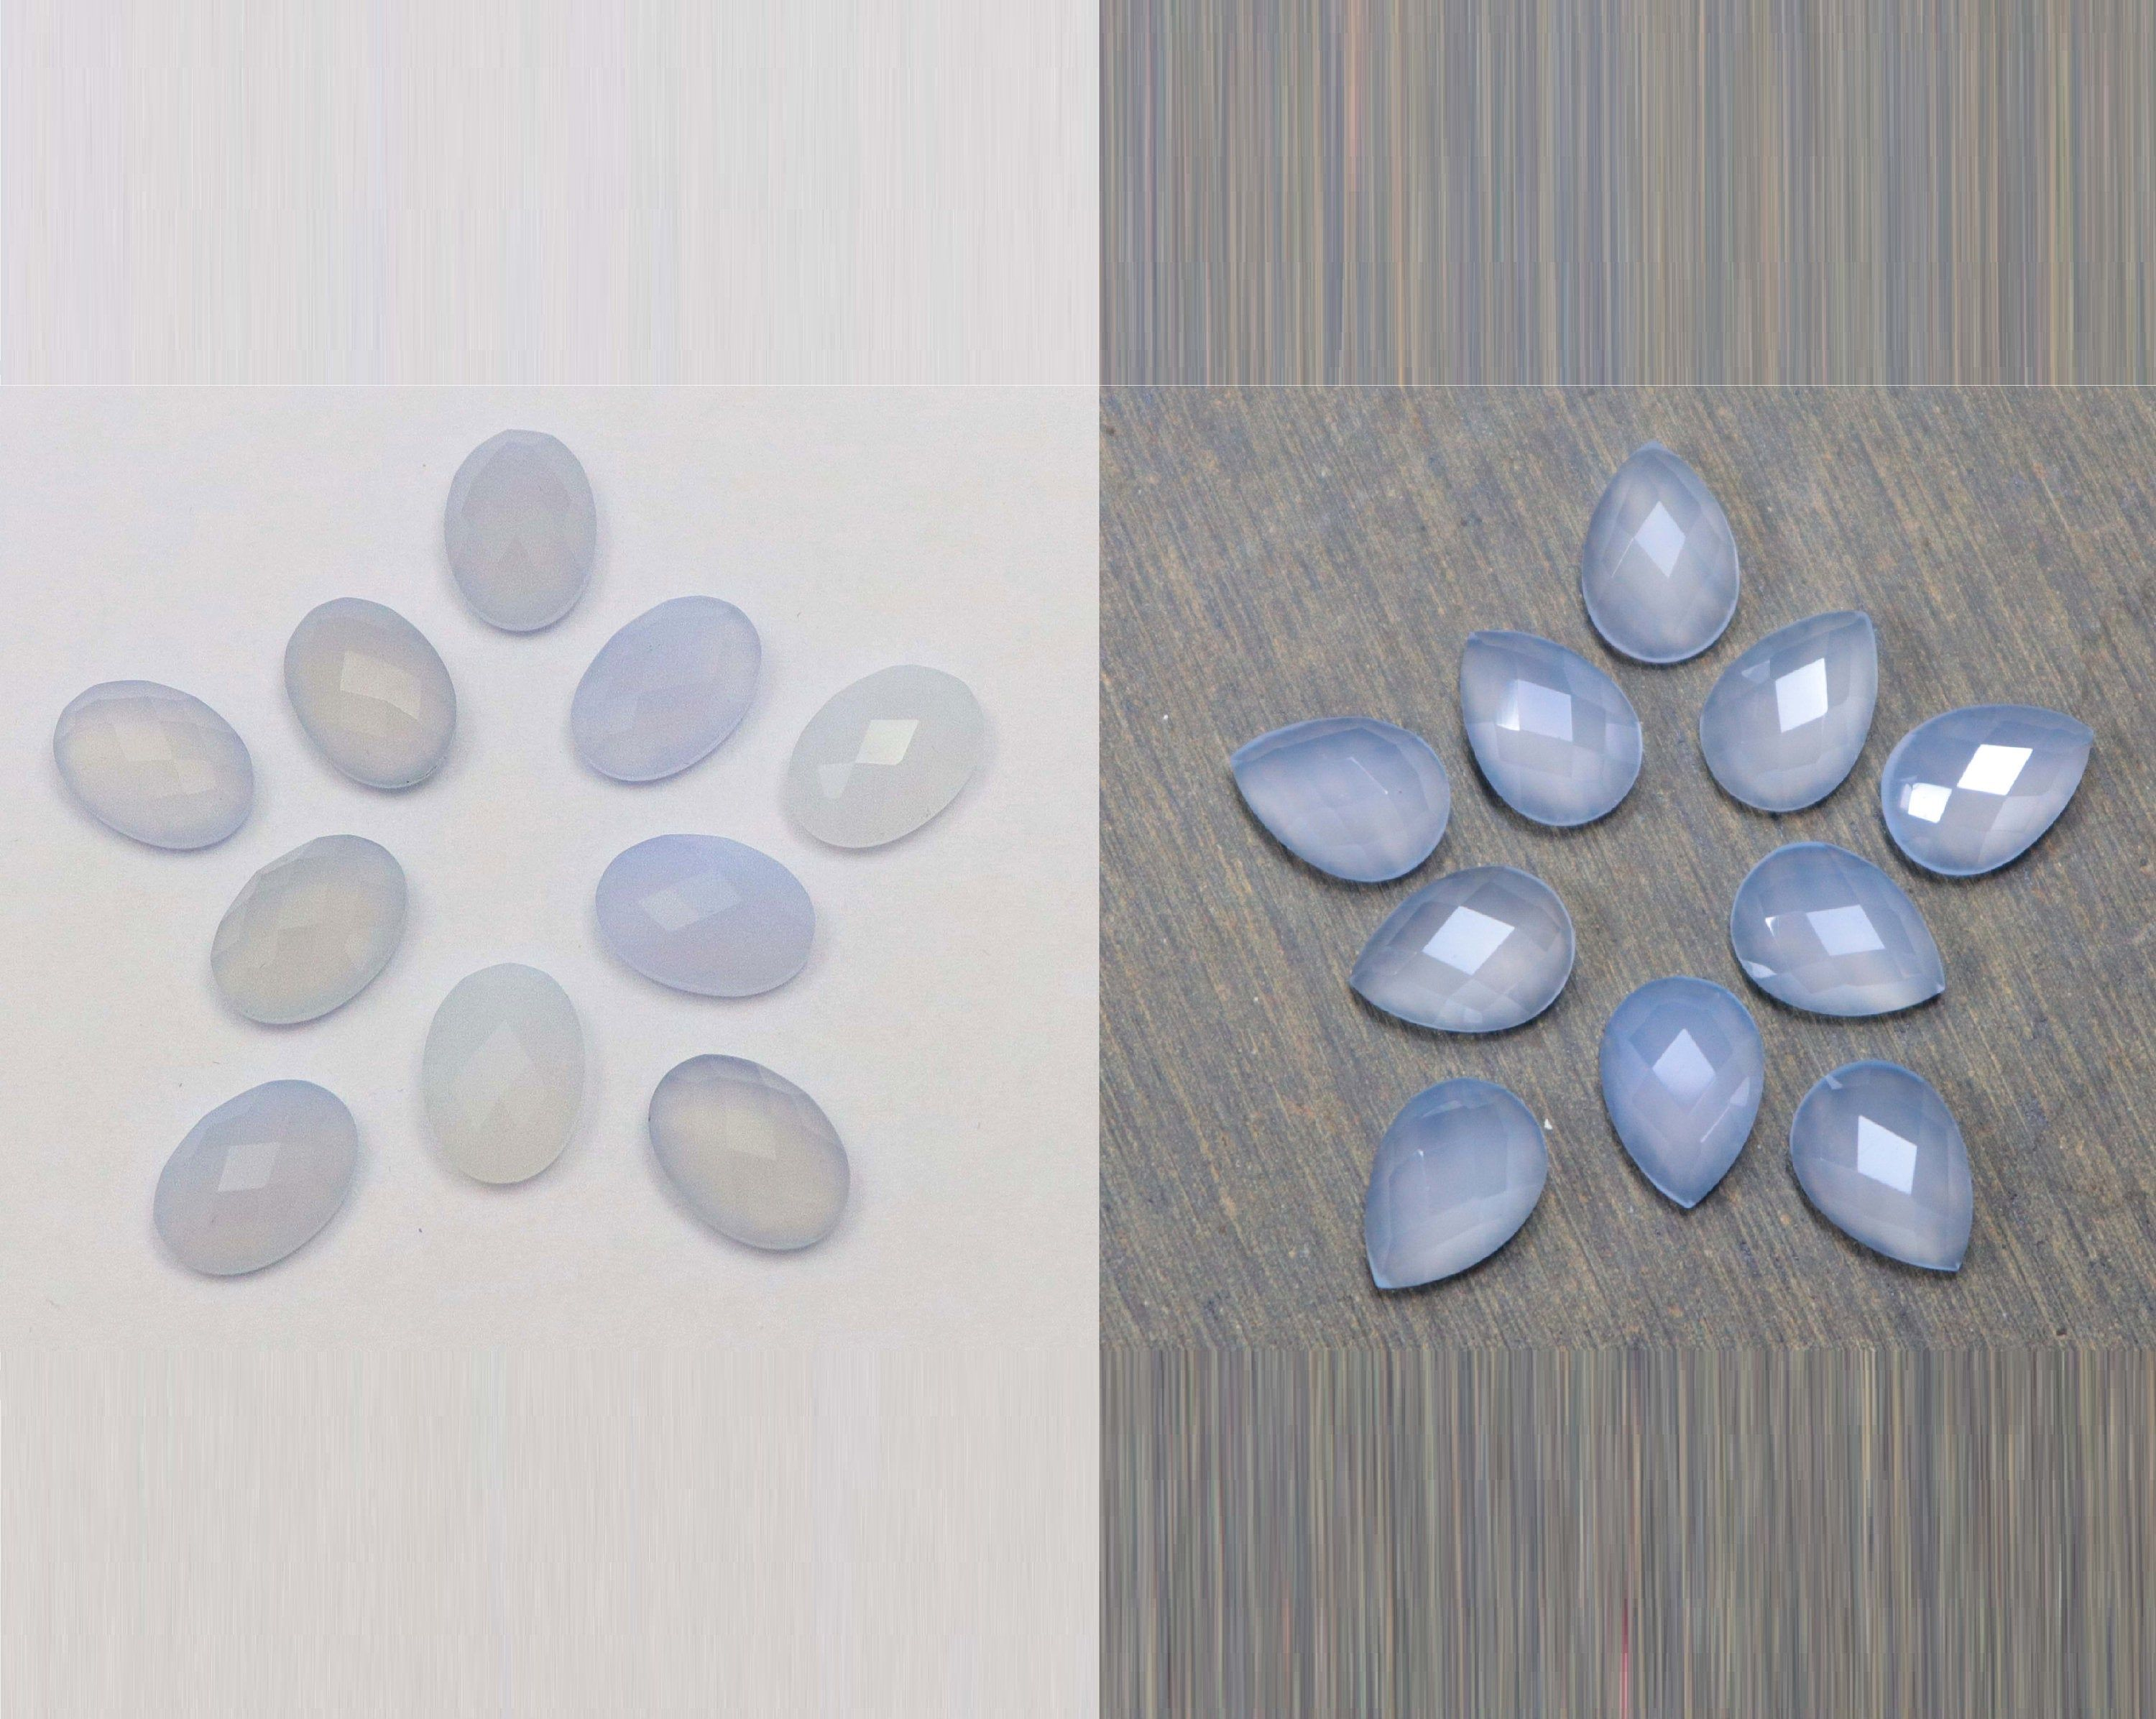 6 mm To 20 mm Gray Chalcedony Round Wholesale Lot Rose Cut Flat Bottom Jewelry Making Loose Gemstones Natural Gray Chalcy One Side Checker